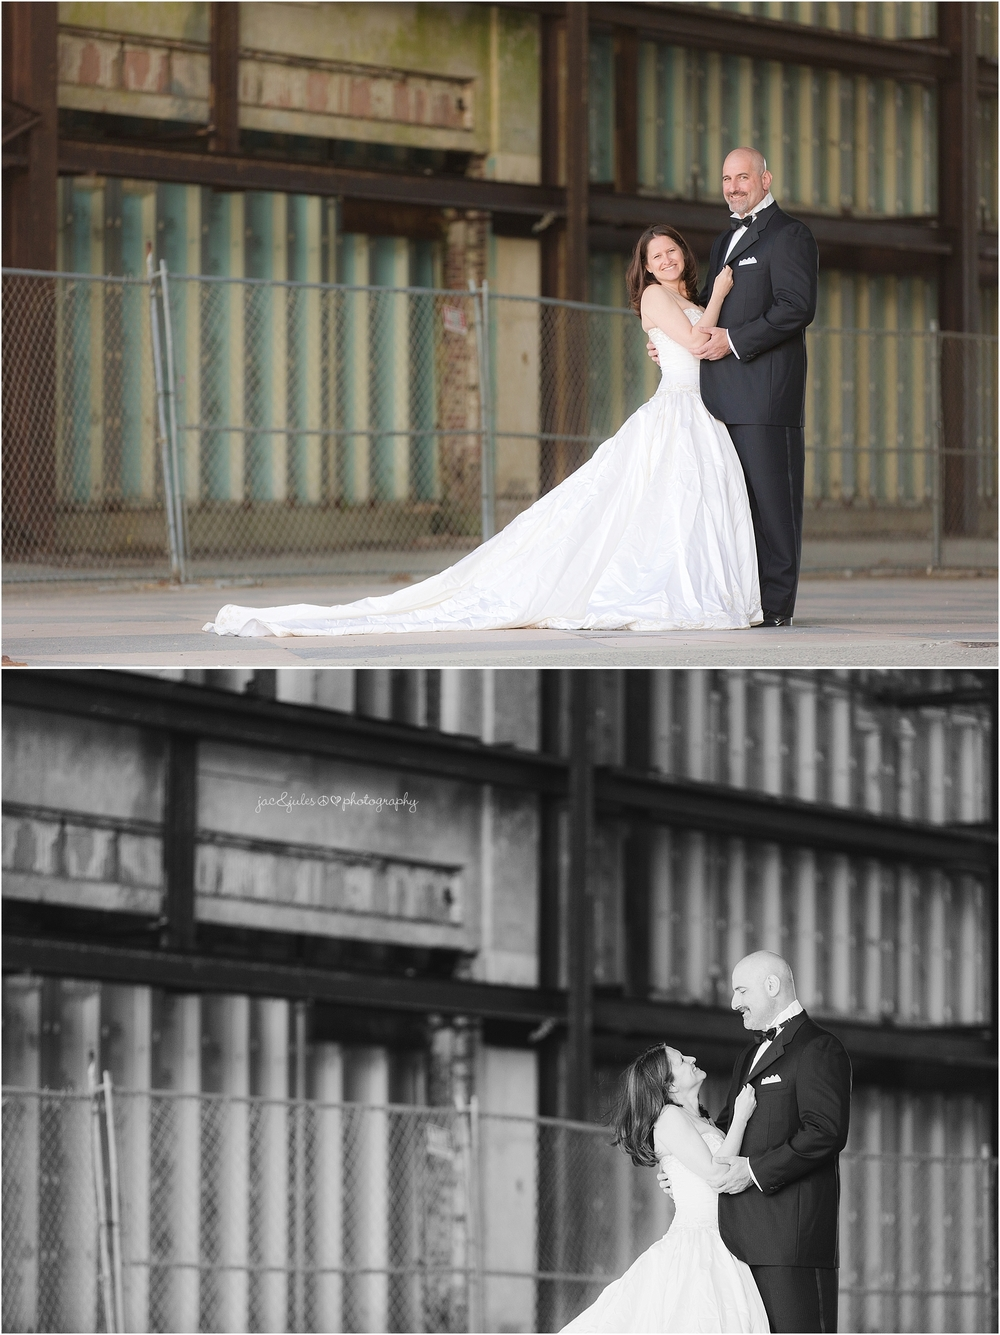 jacnjules photographs bride and groom in Asbury Park NJ